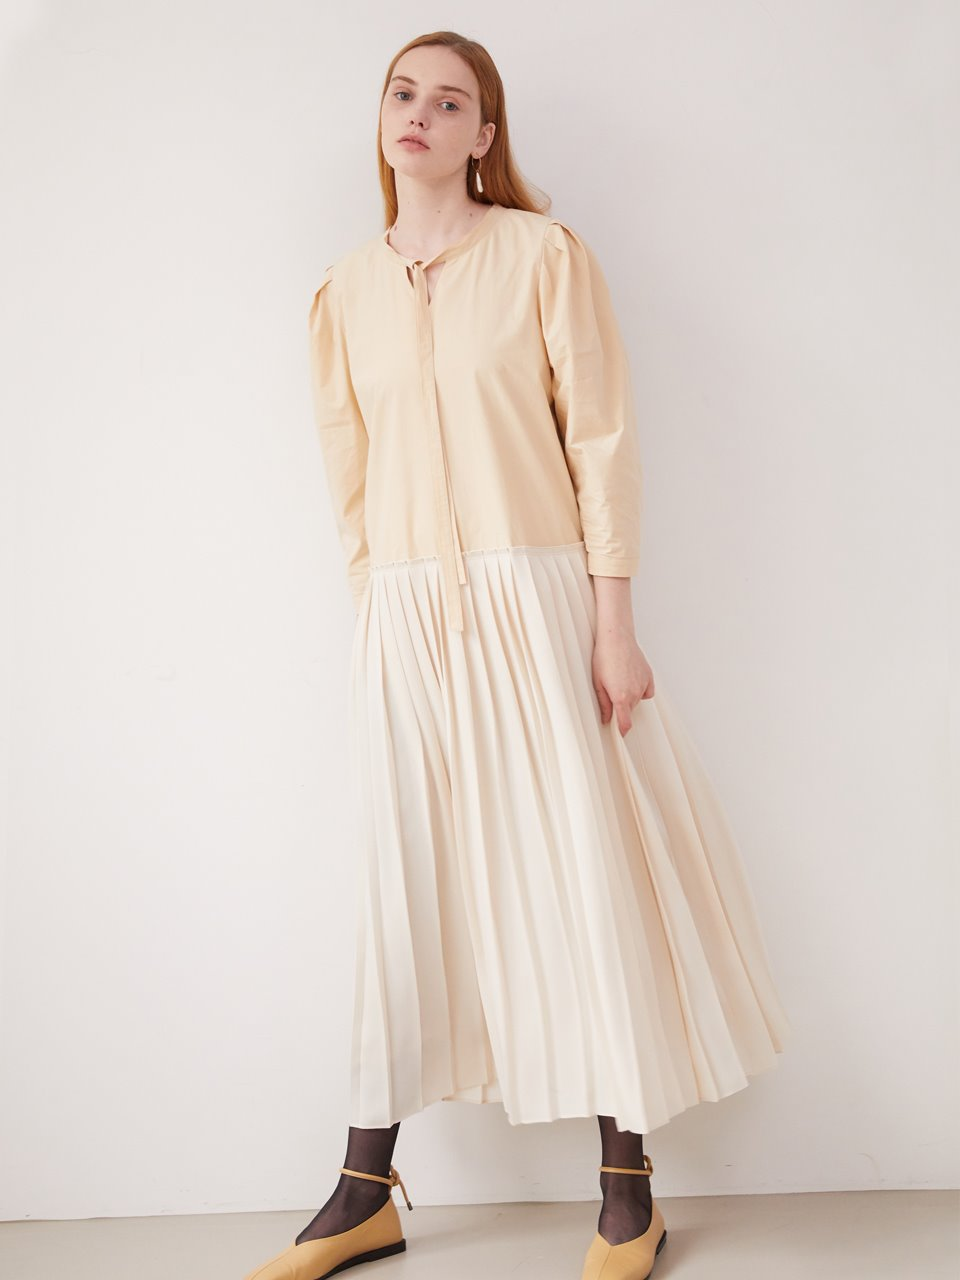 Volume sleeve pleats dress - Nude beige